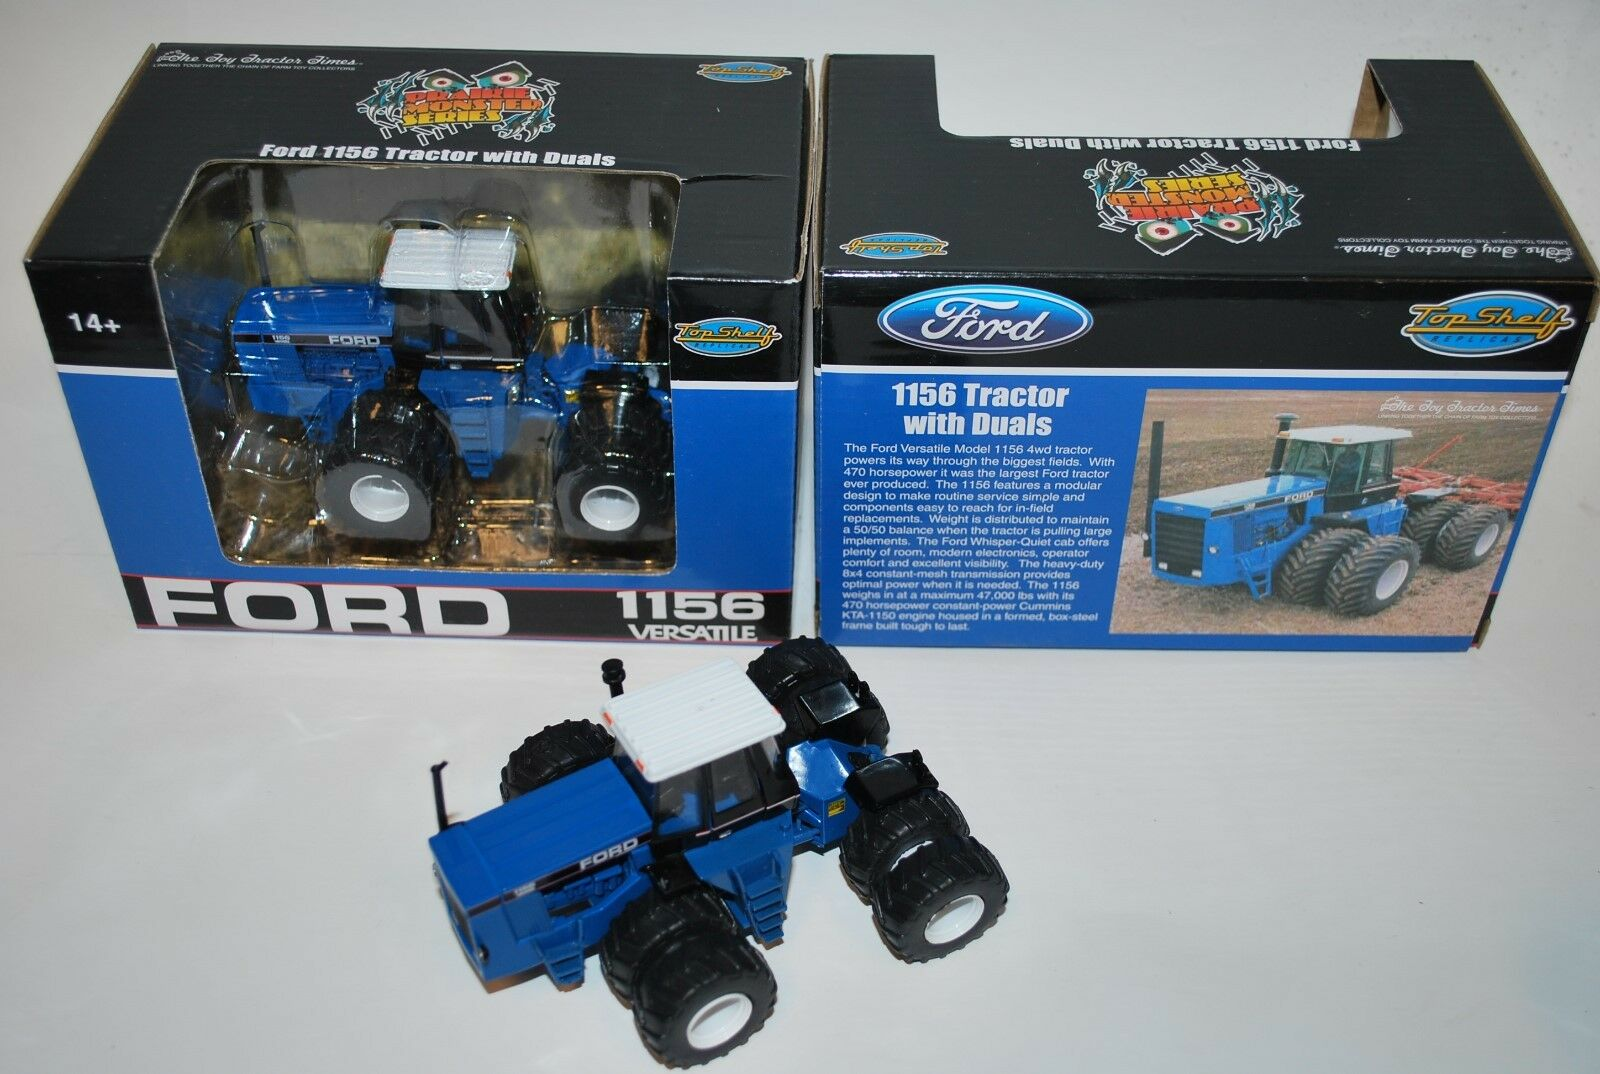 1 64 Ford Versatile 1156 4wd tractor with duals. Toy tractor Times, Great detail